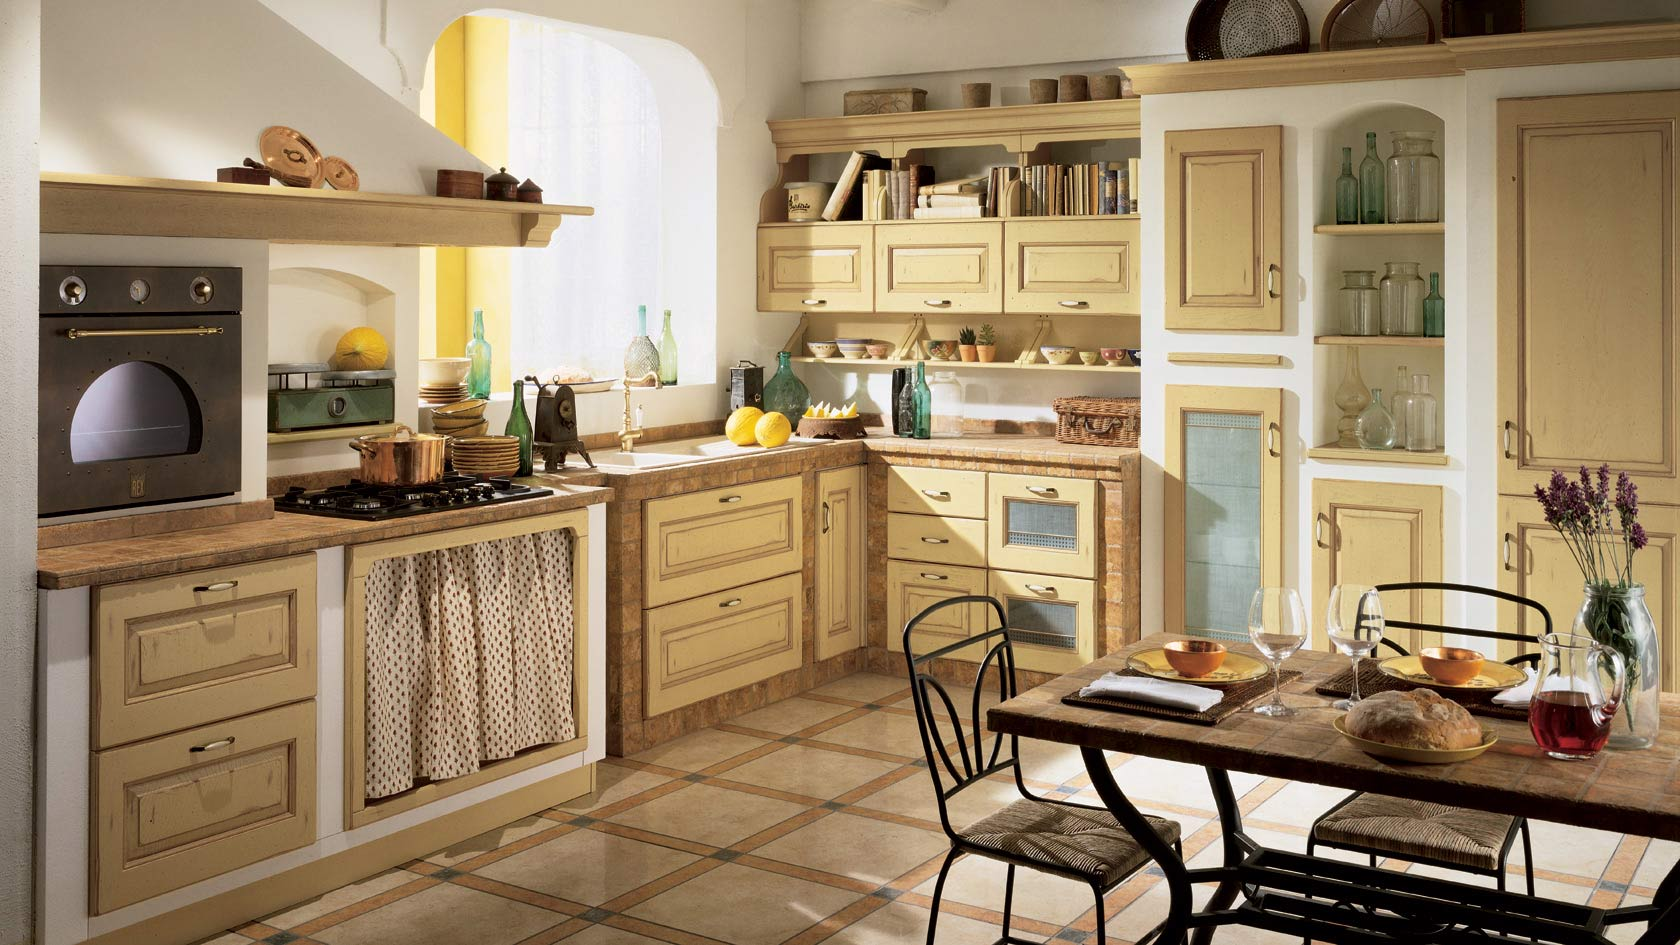 Emejing Come Arredare La Cucina Ideas - Skilifts.us - skilifts.us